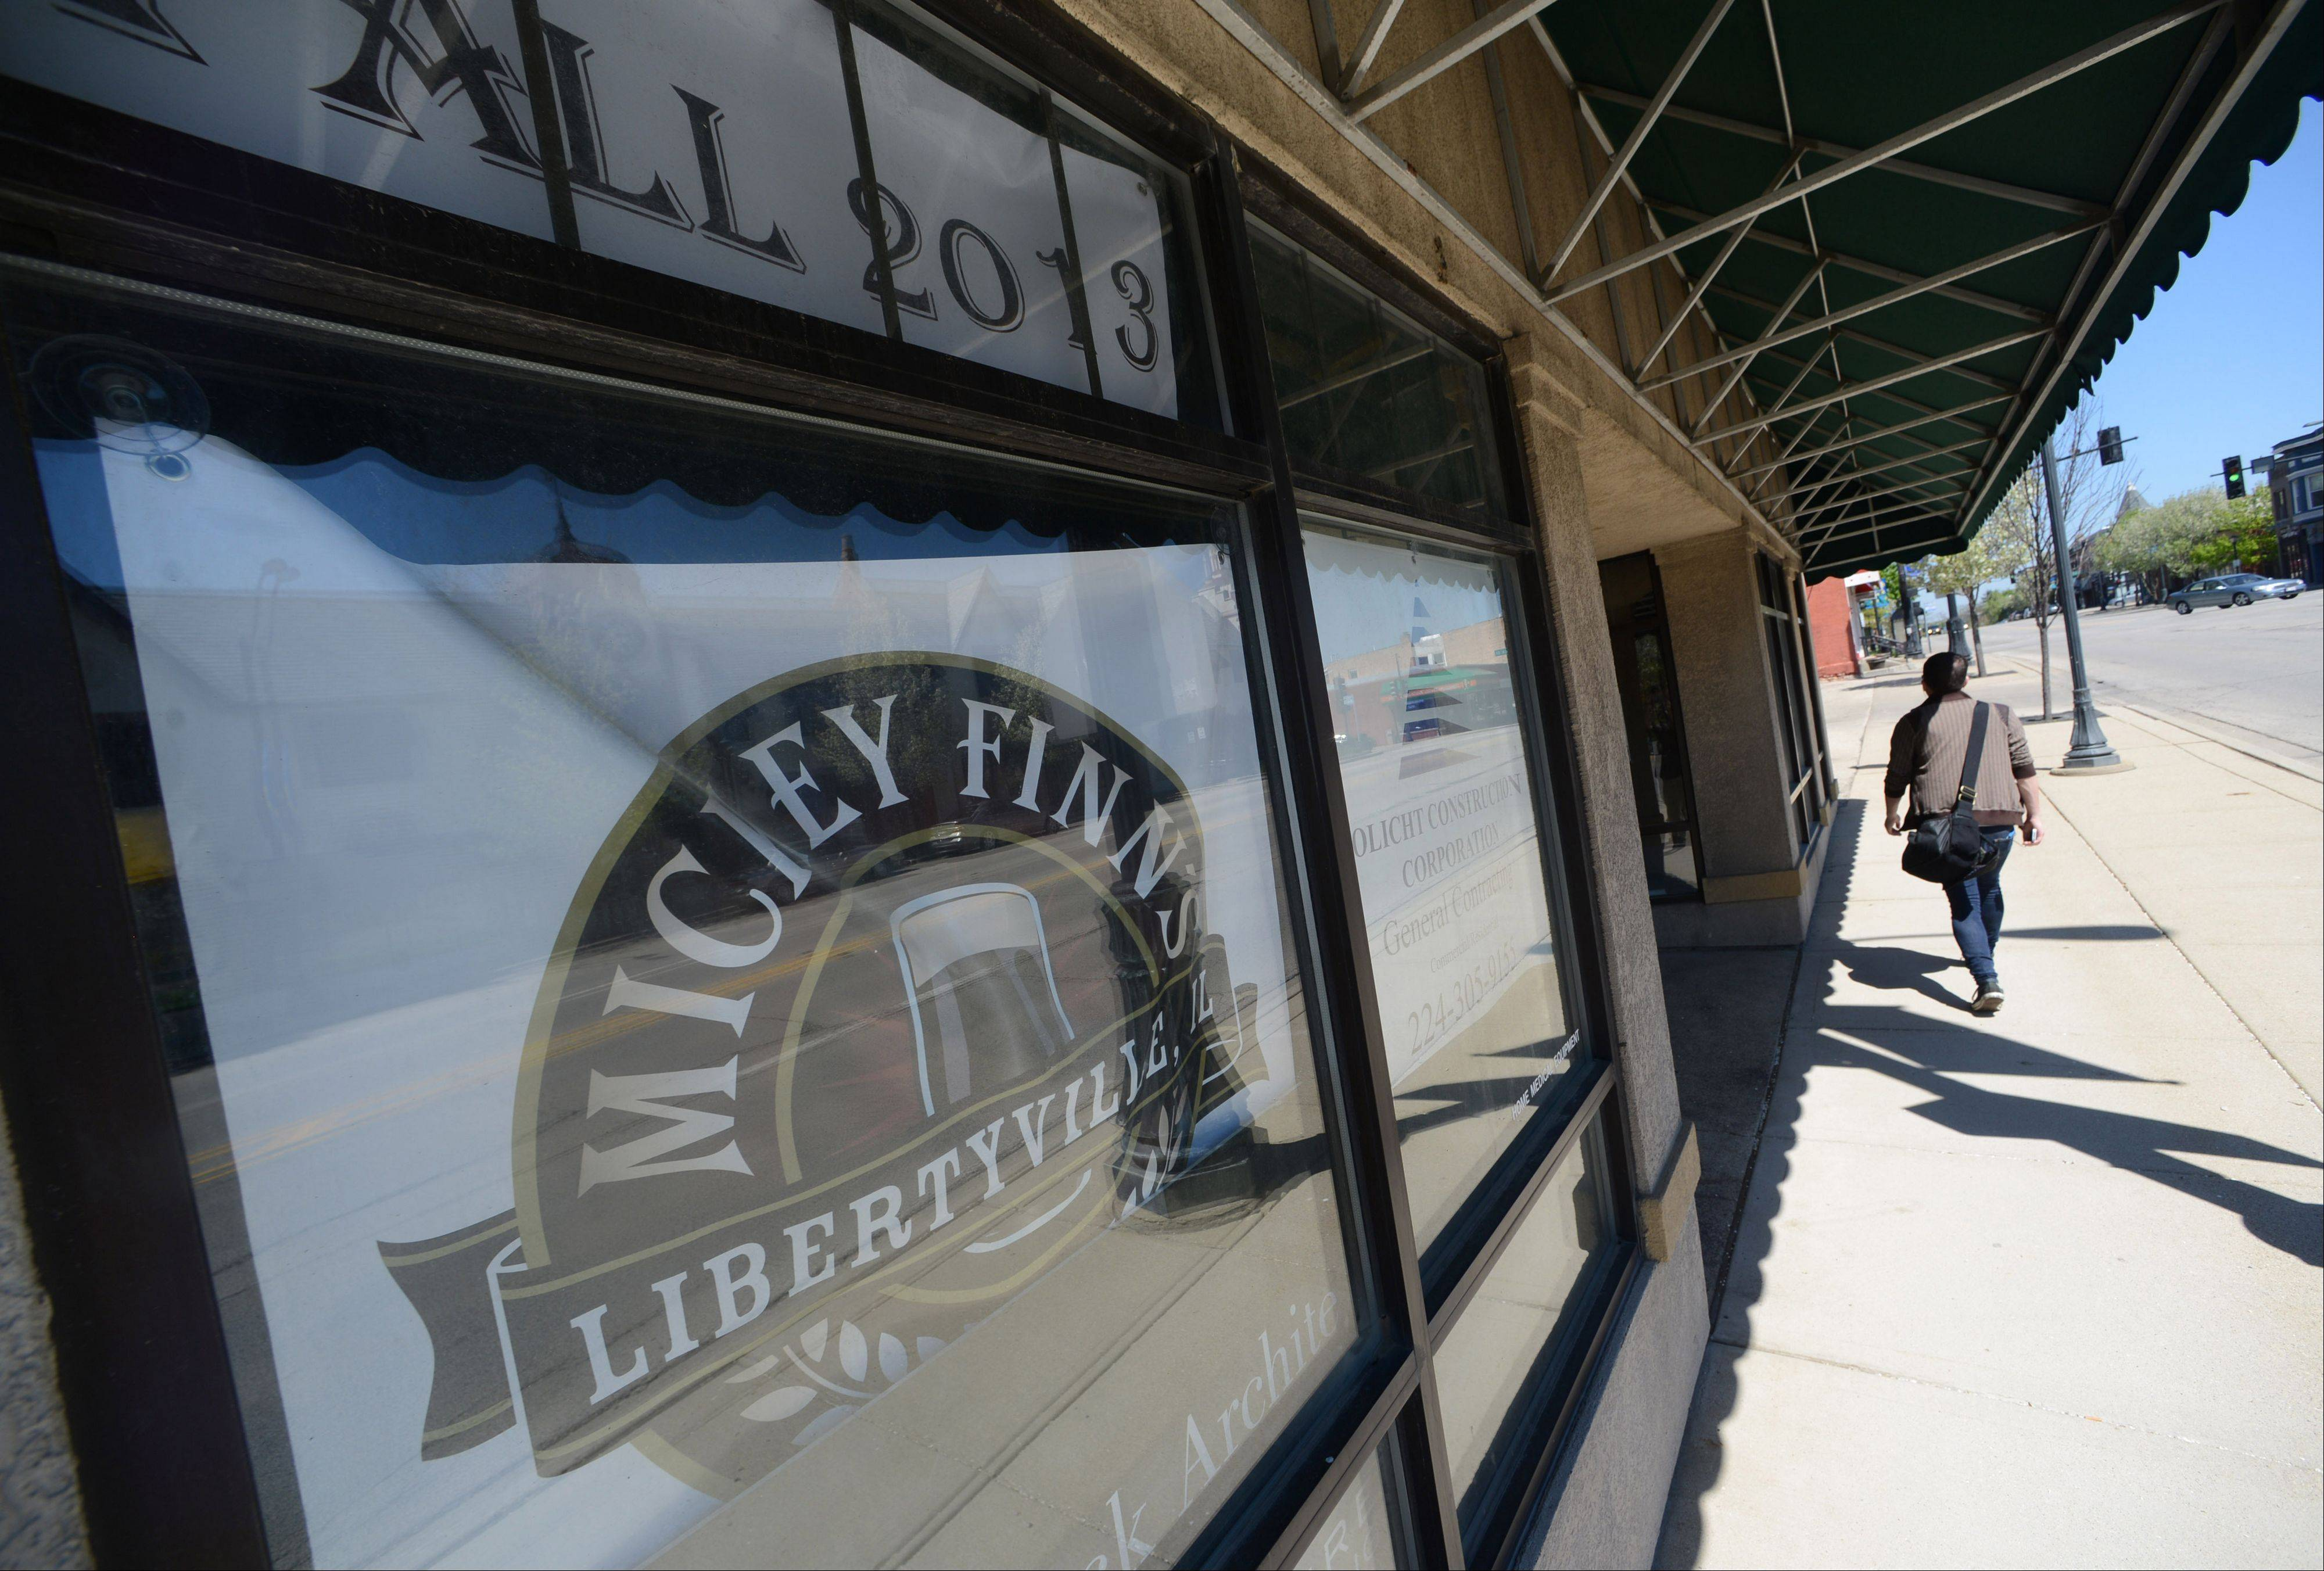 Work is under way for Mickey Finn's new location in downtown Libertyville.